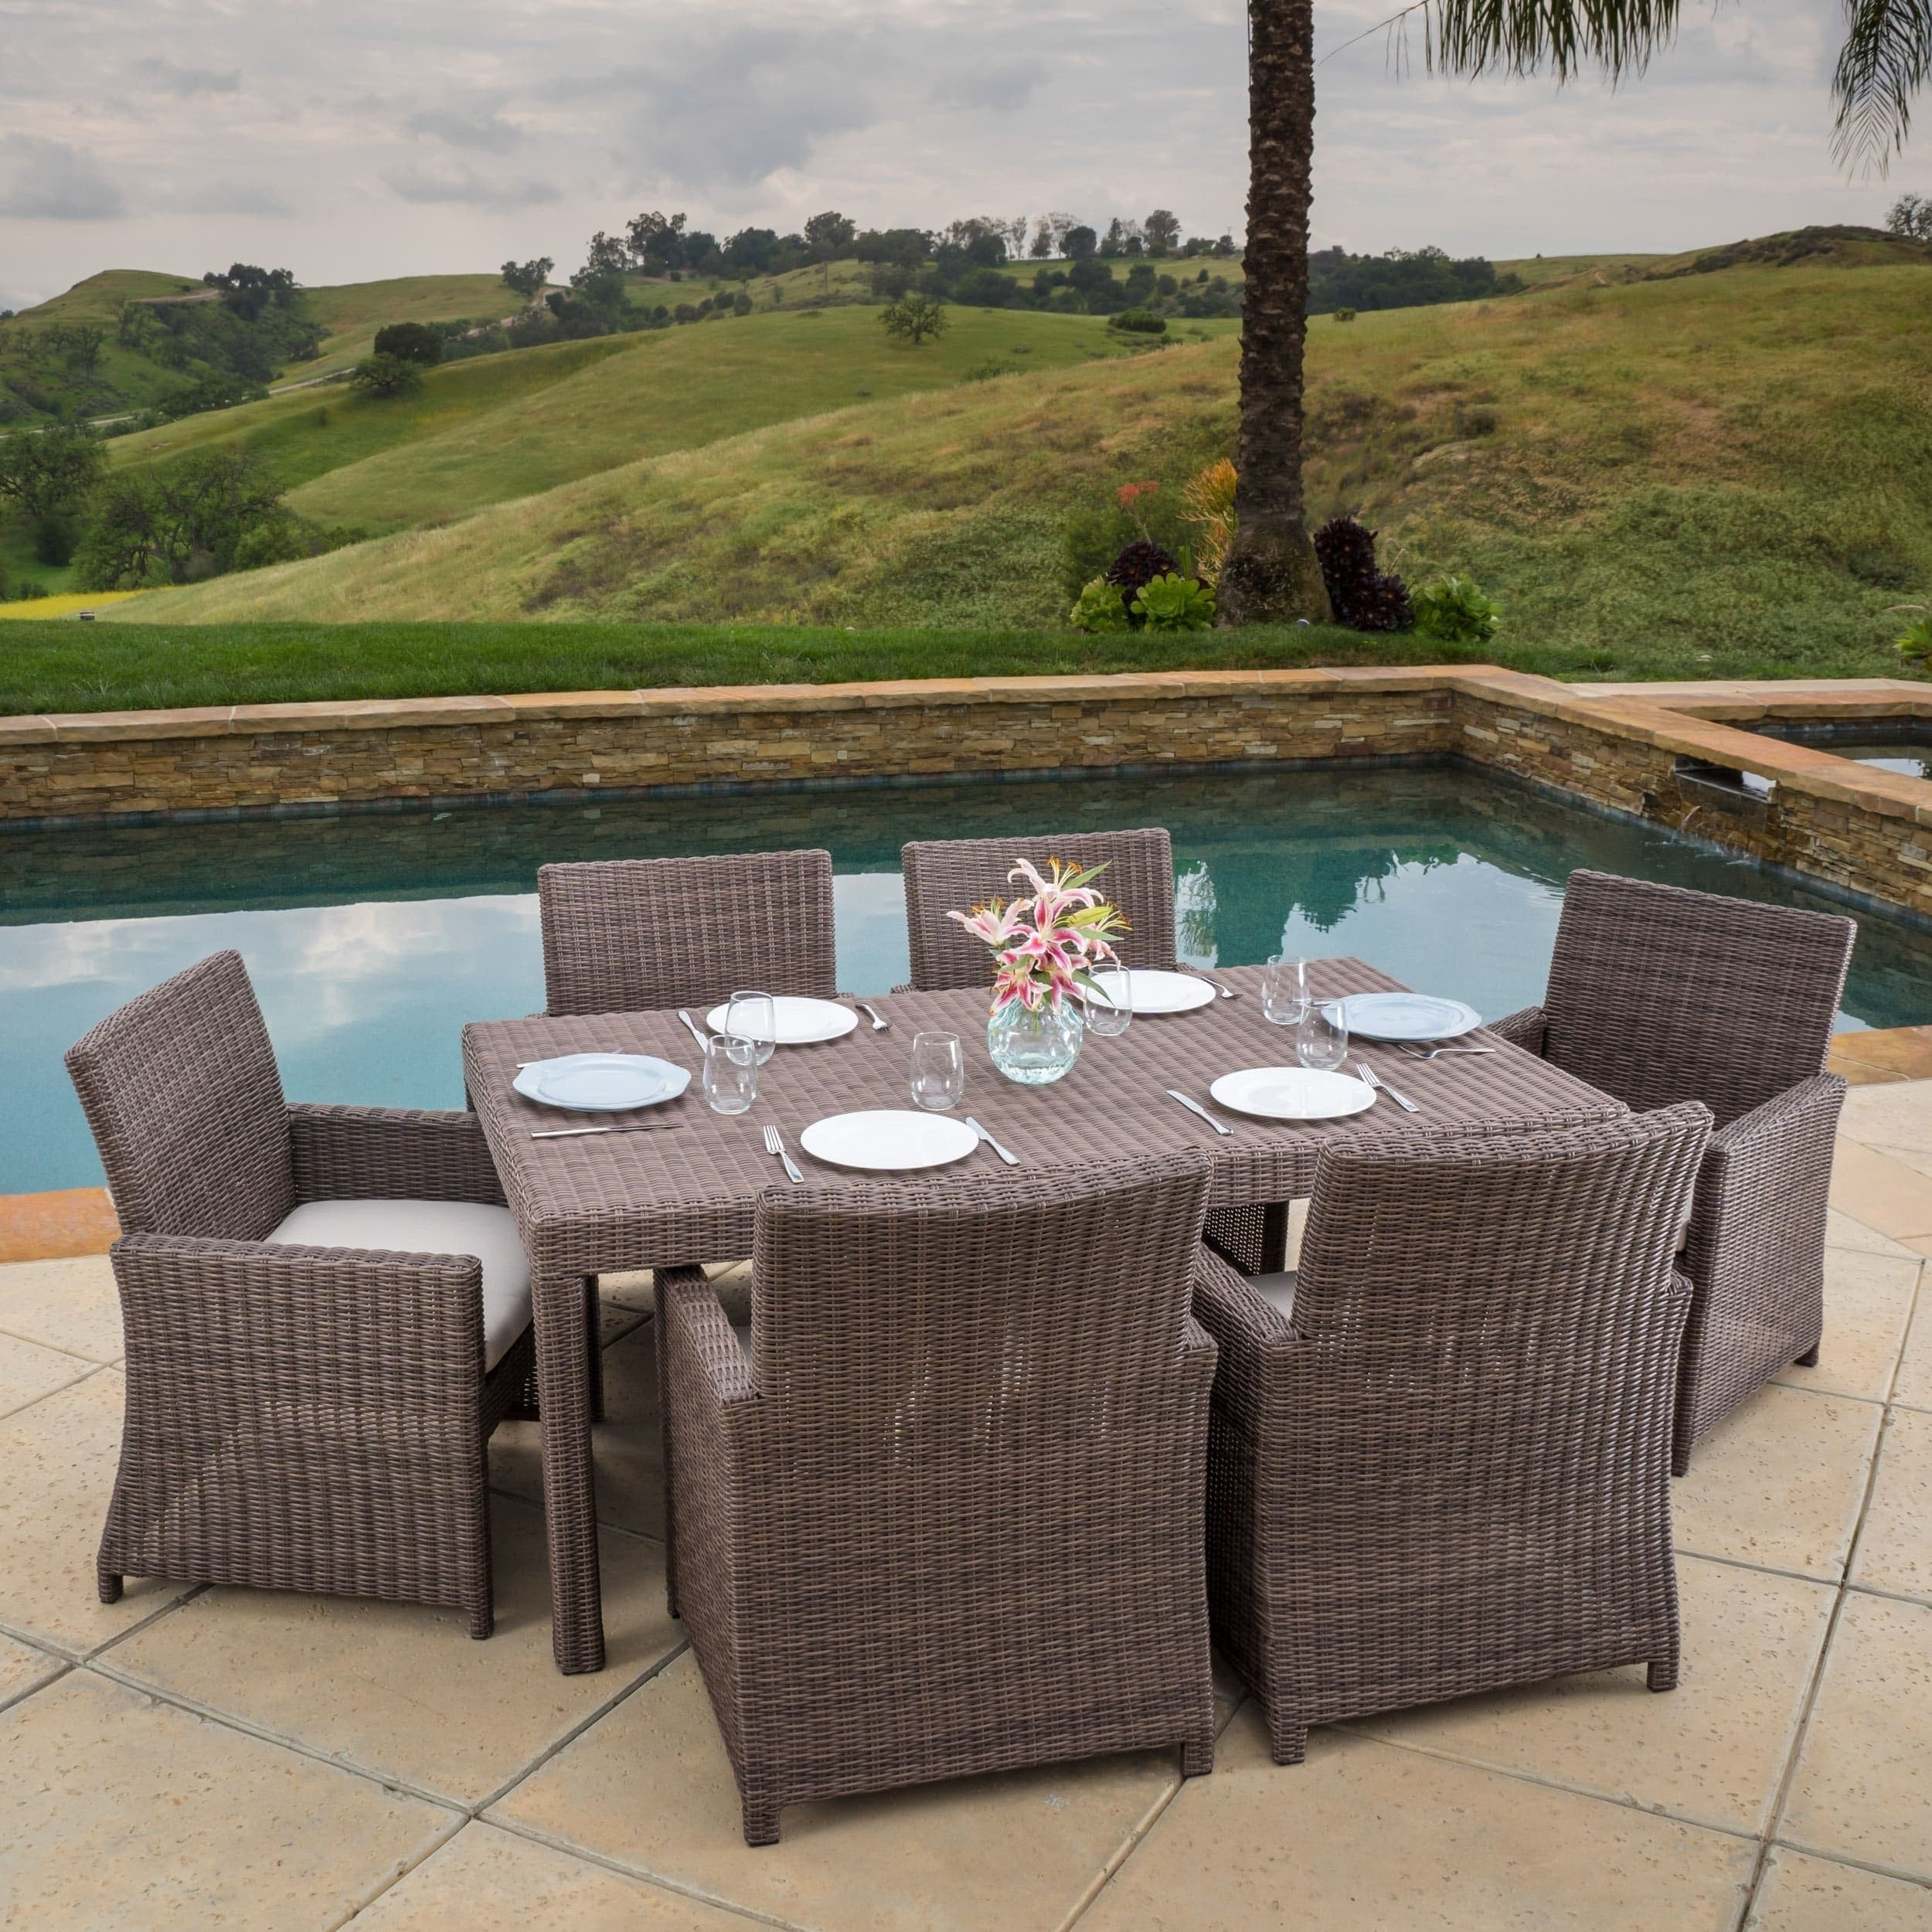 Barcelona outdoor 7 piece aluminum dining set with sunbrella cushions by christopher knight home